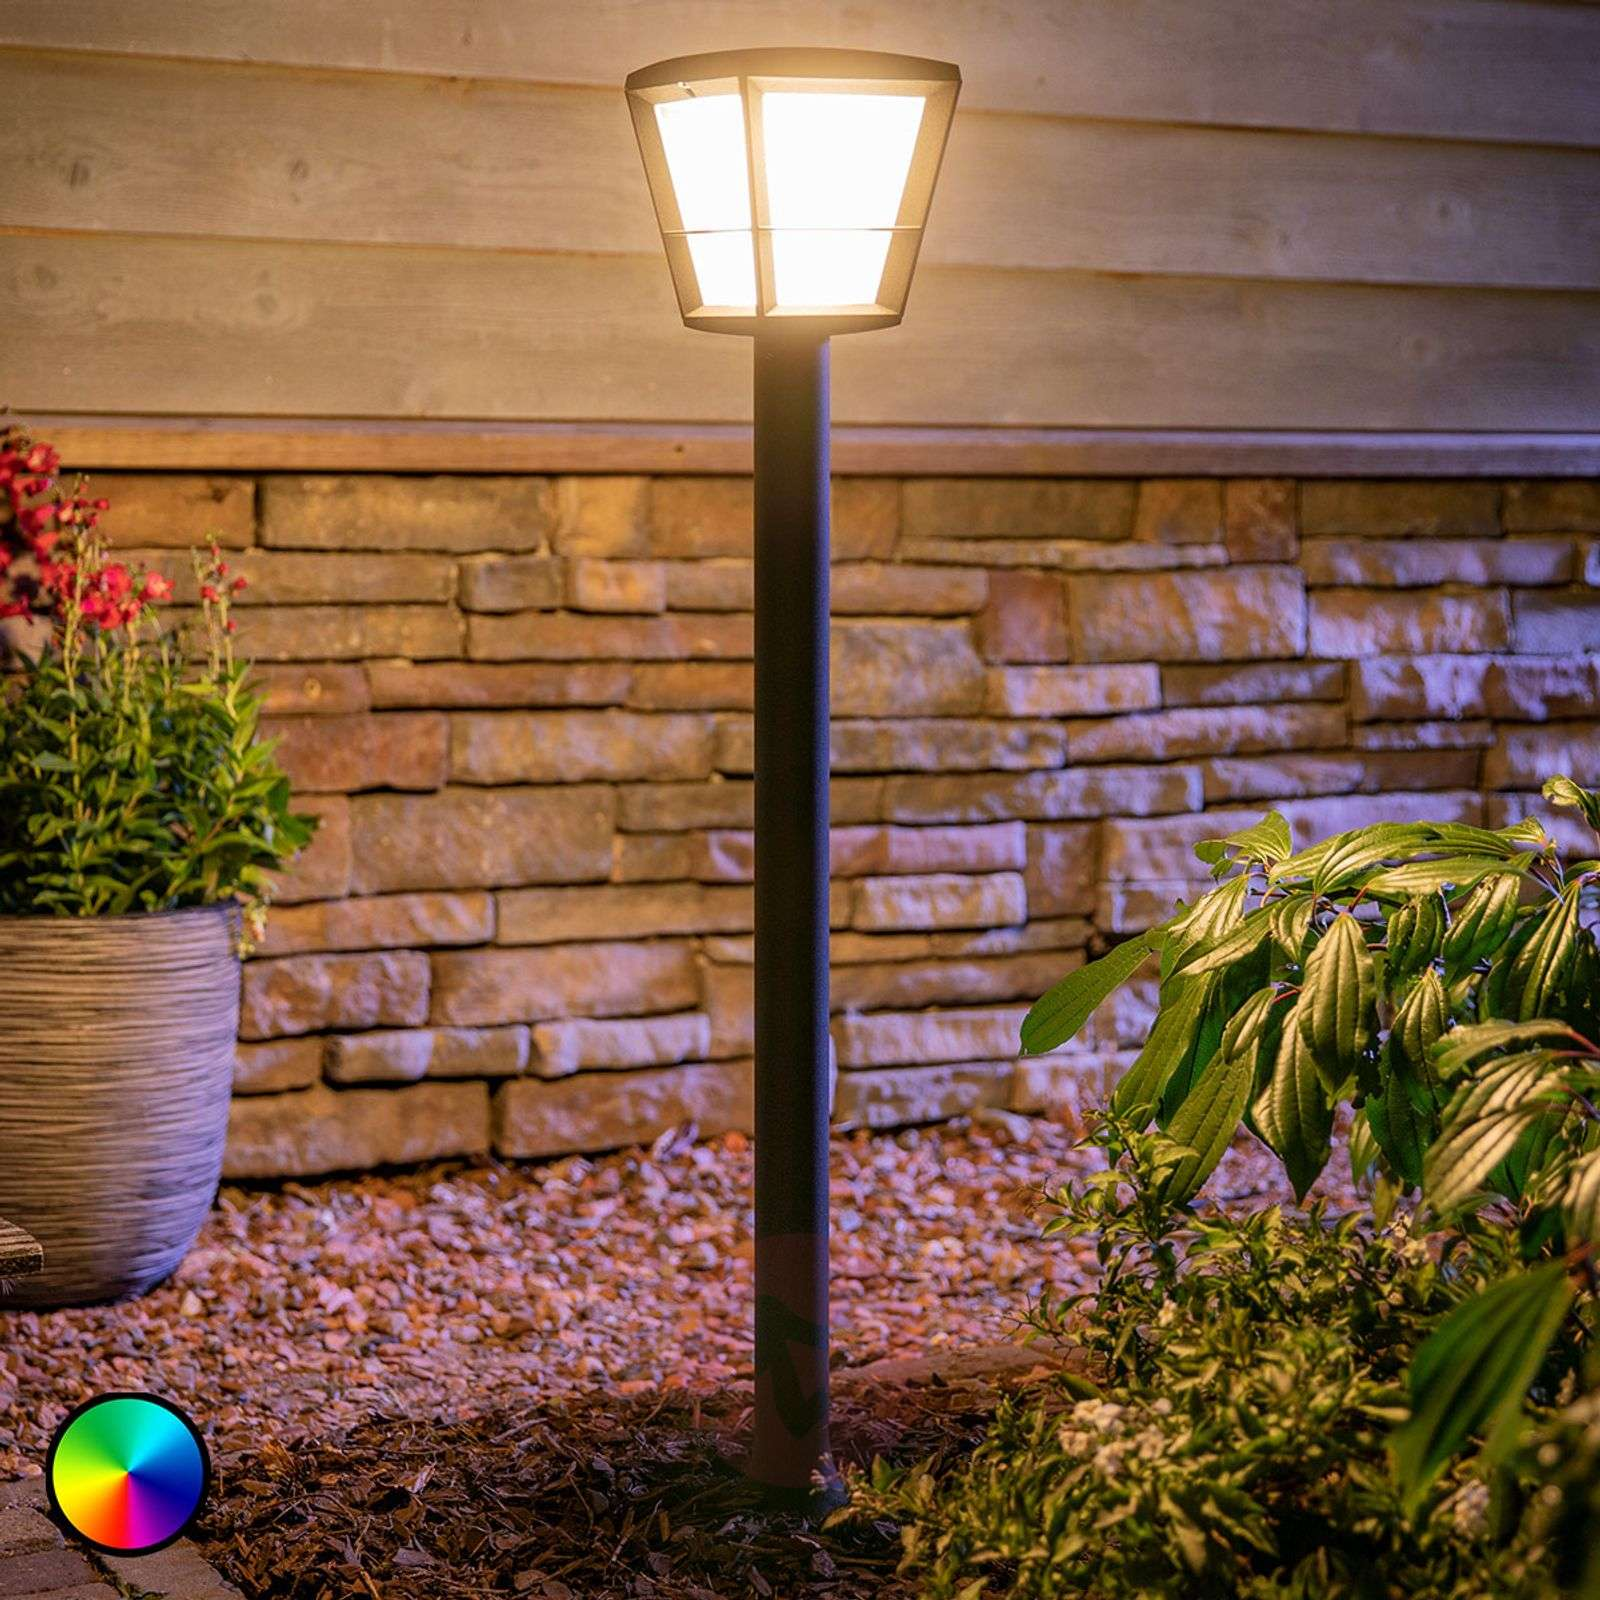 Philips Hue White+Color Econic LED-pylväsvalaisin-7534120-02